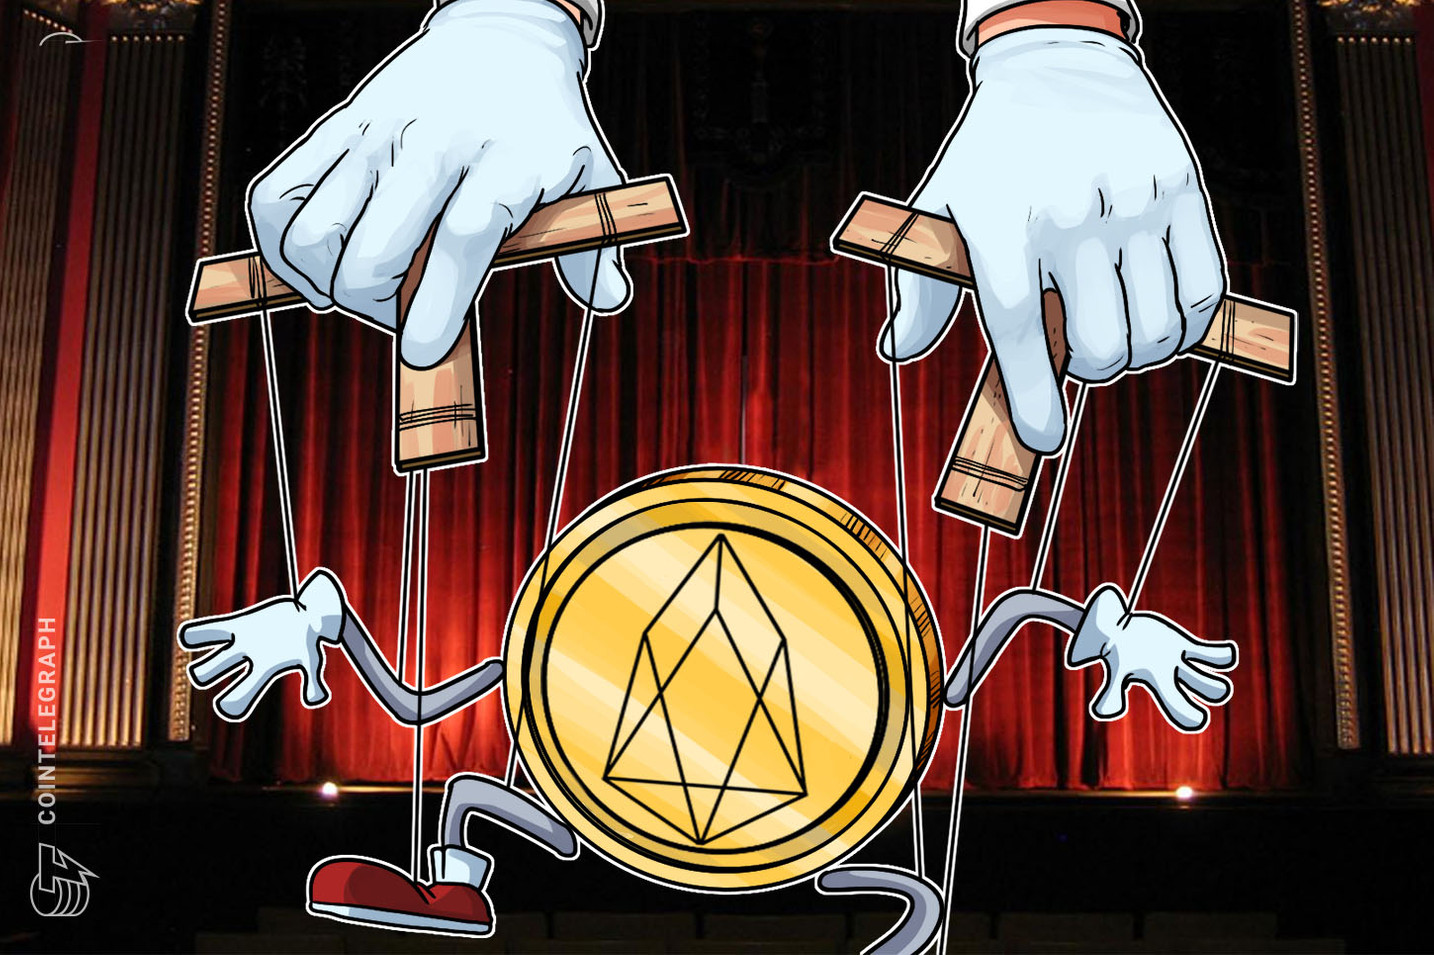 EOS Developer Acknowledges Claims of 'Collusion' and 'Mutual Voting' Between Nodes